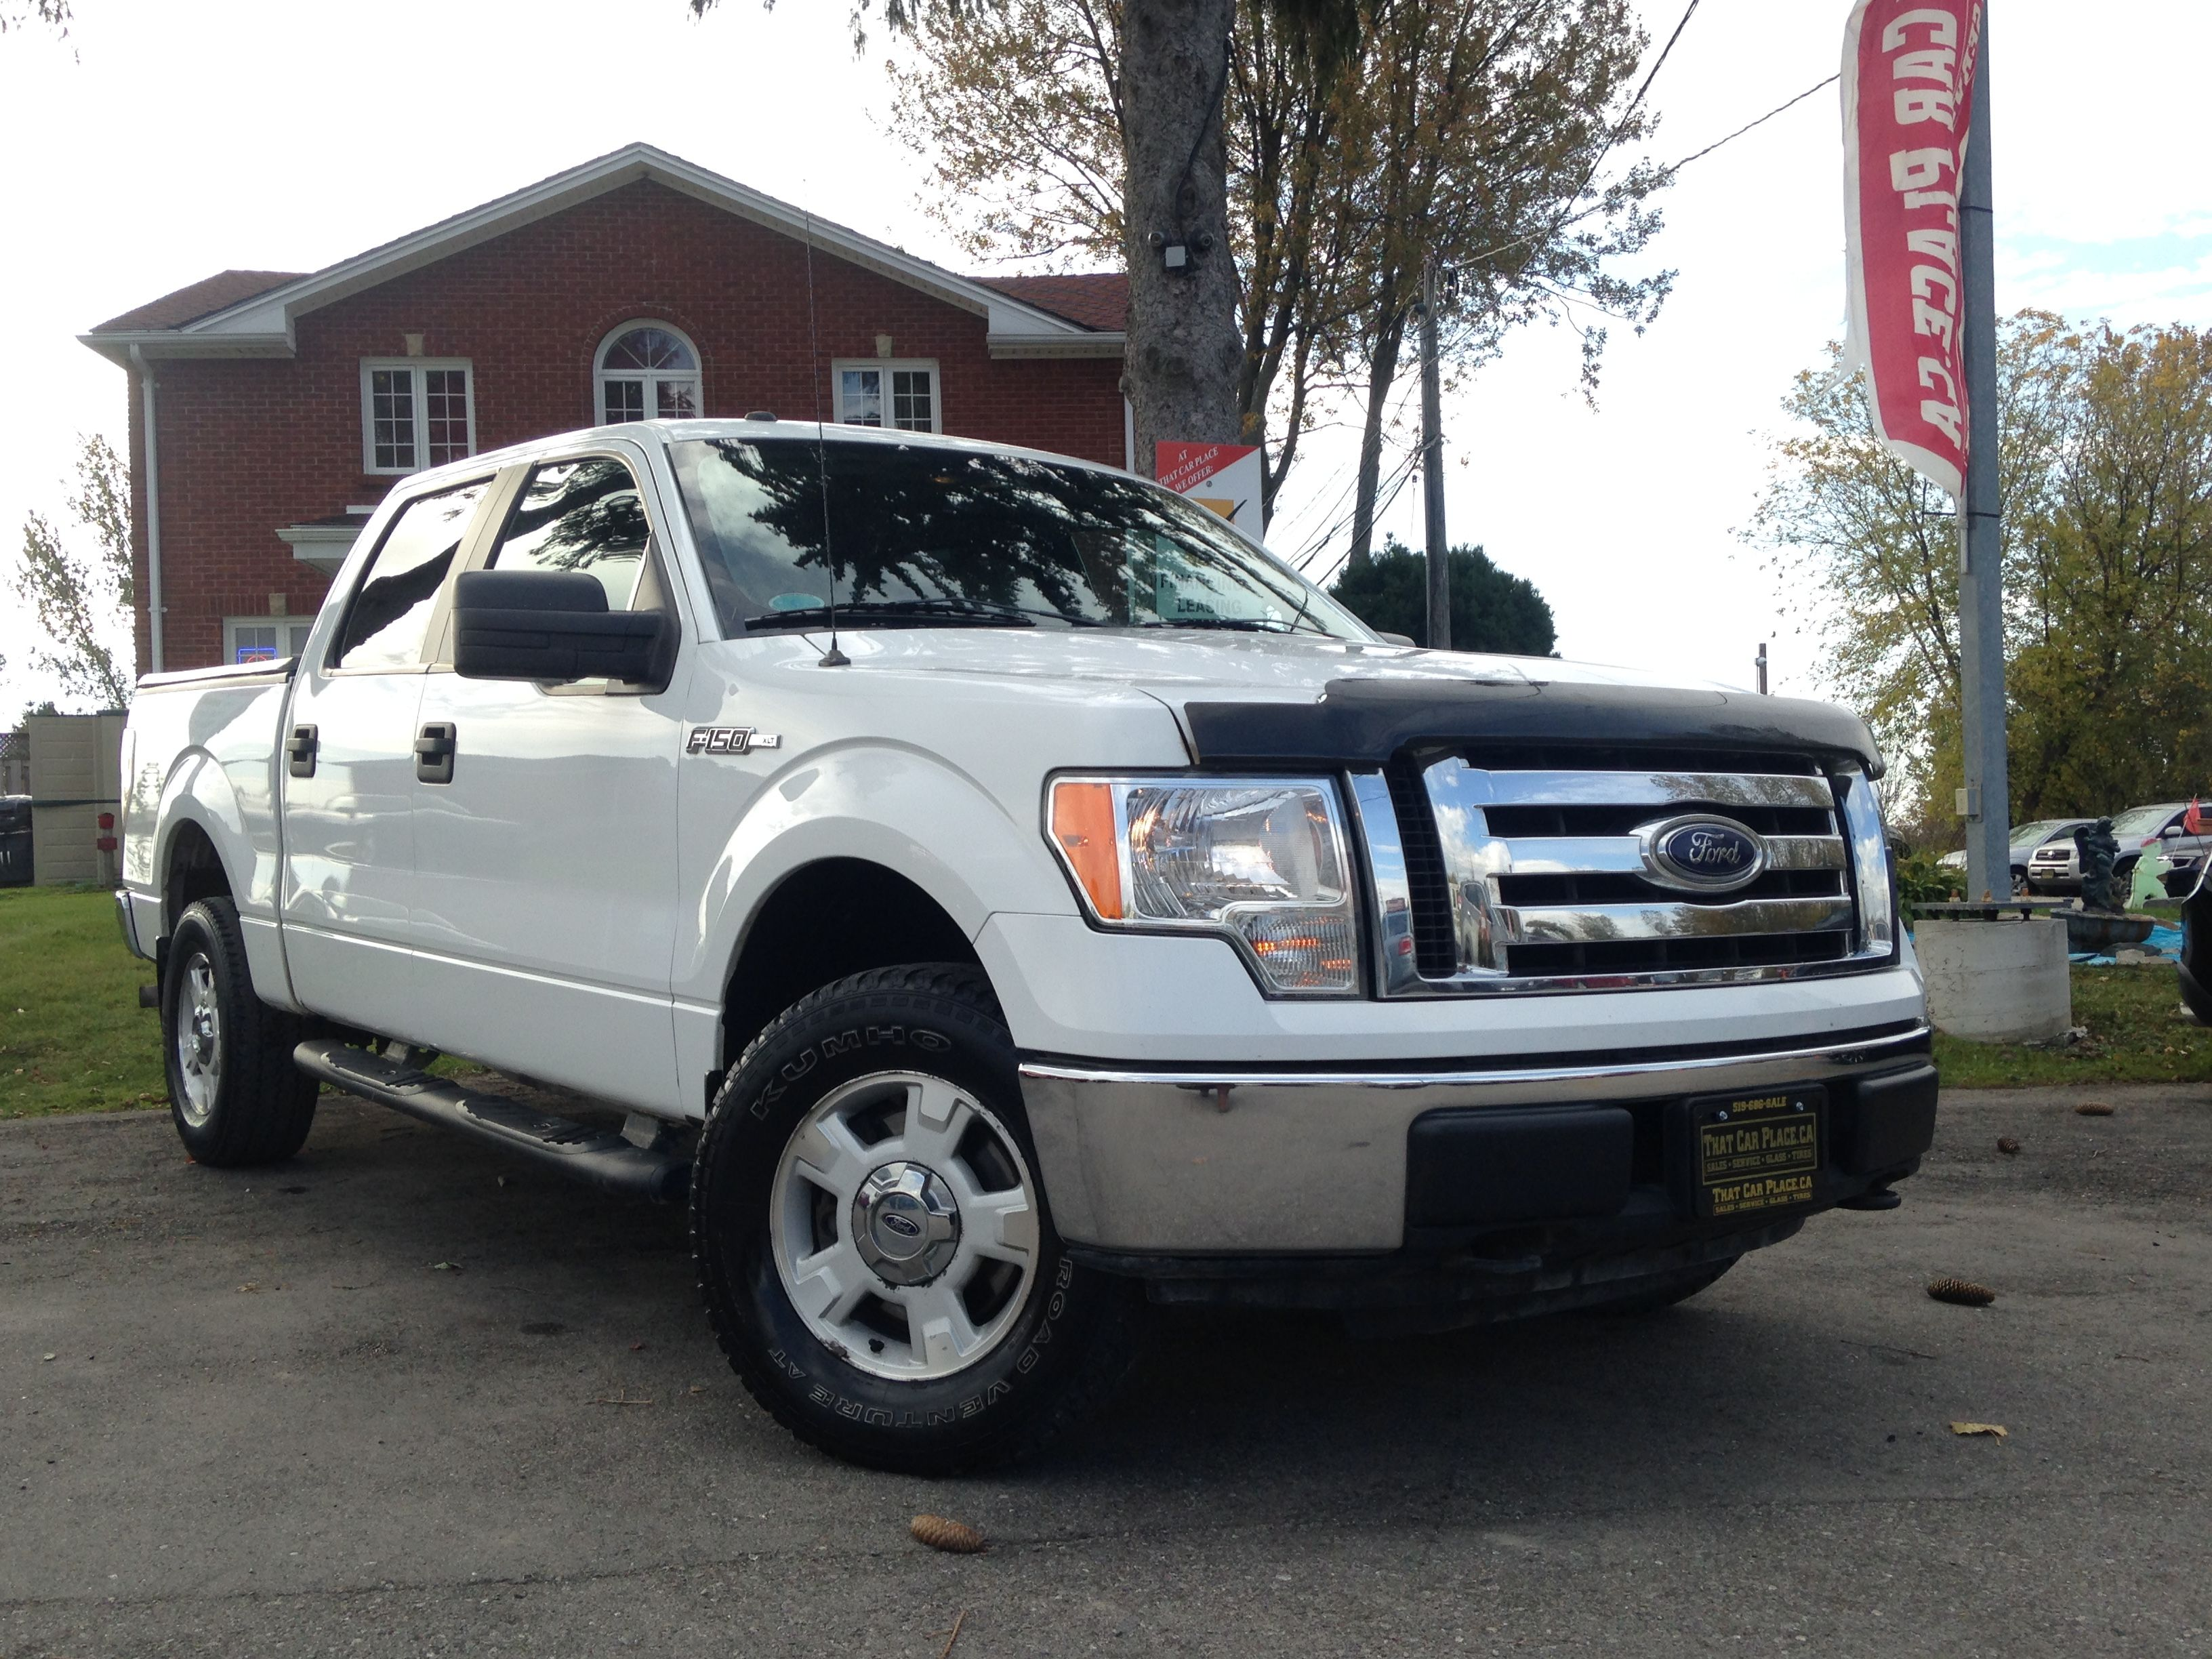 2010 Ford F 150 21 987 Drive This Vehicle For 92 00 Wklly For 72 Months 0 Down 4 9 Interest Car Dealership Car Places Used Cars